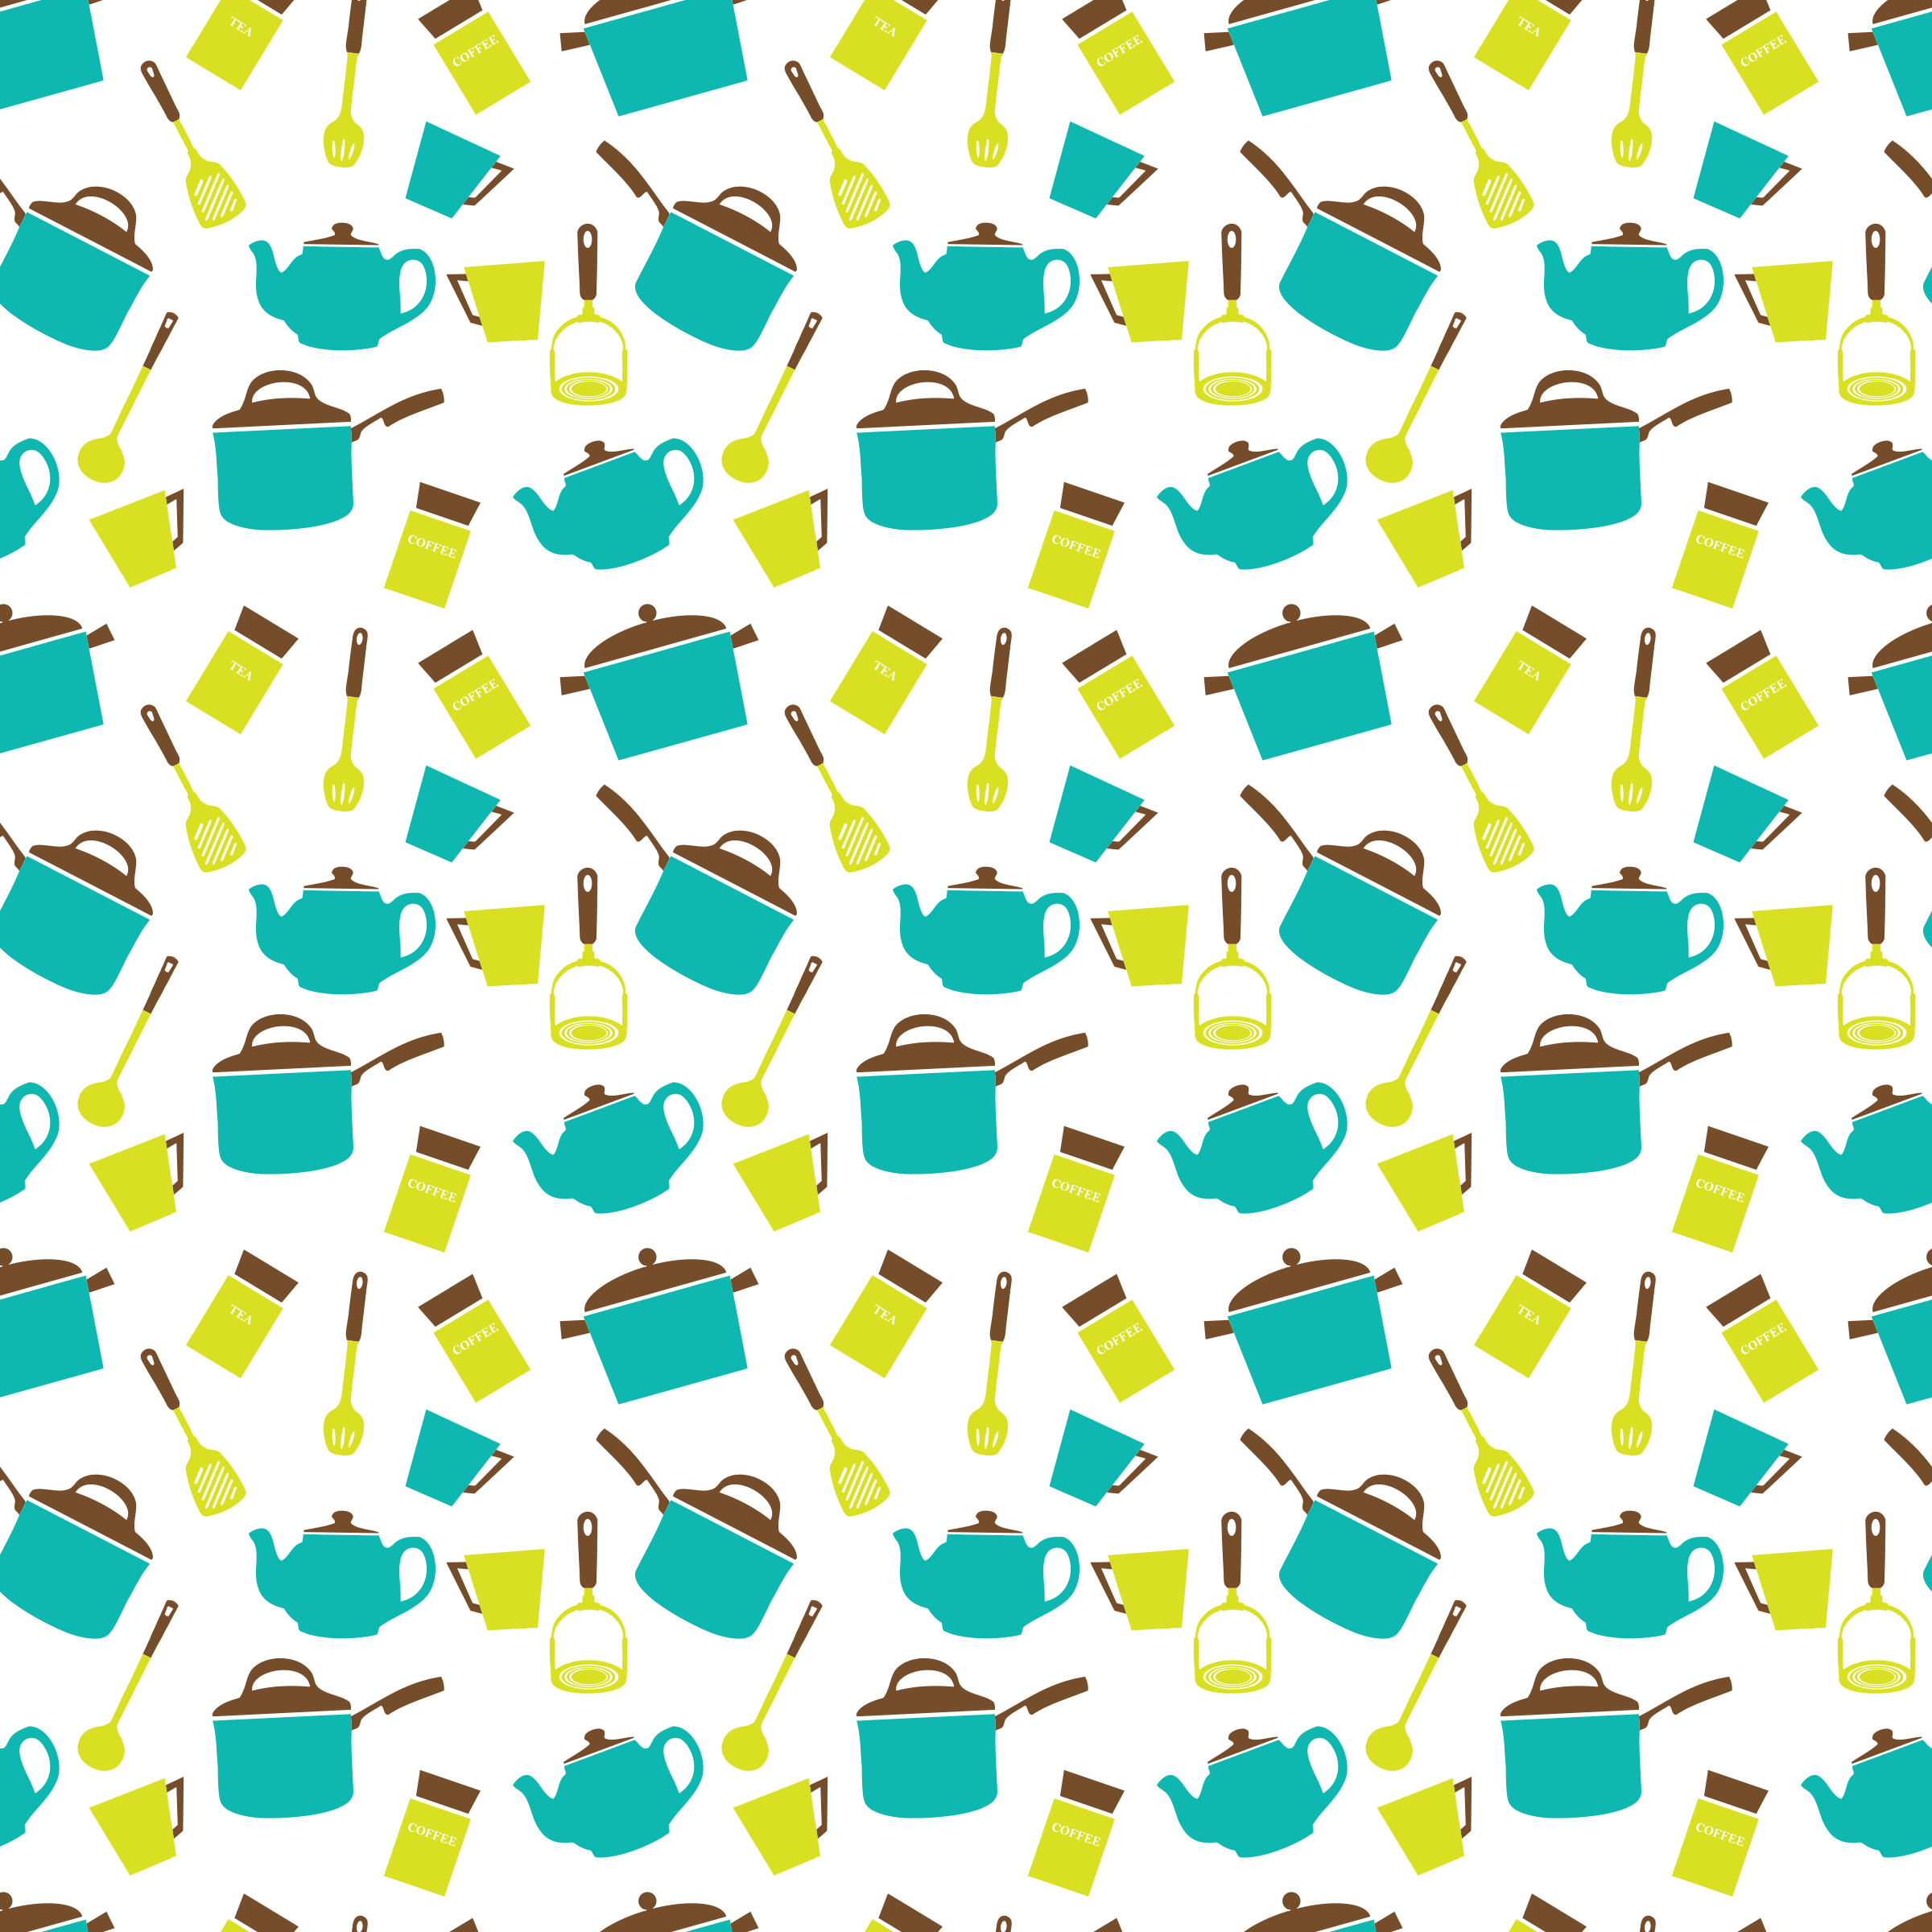 Clipart kitchen utensils crockery seamless pattern for Kitchen wallpaper patterns